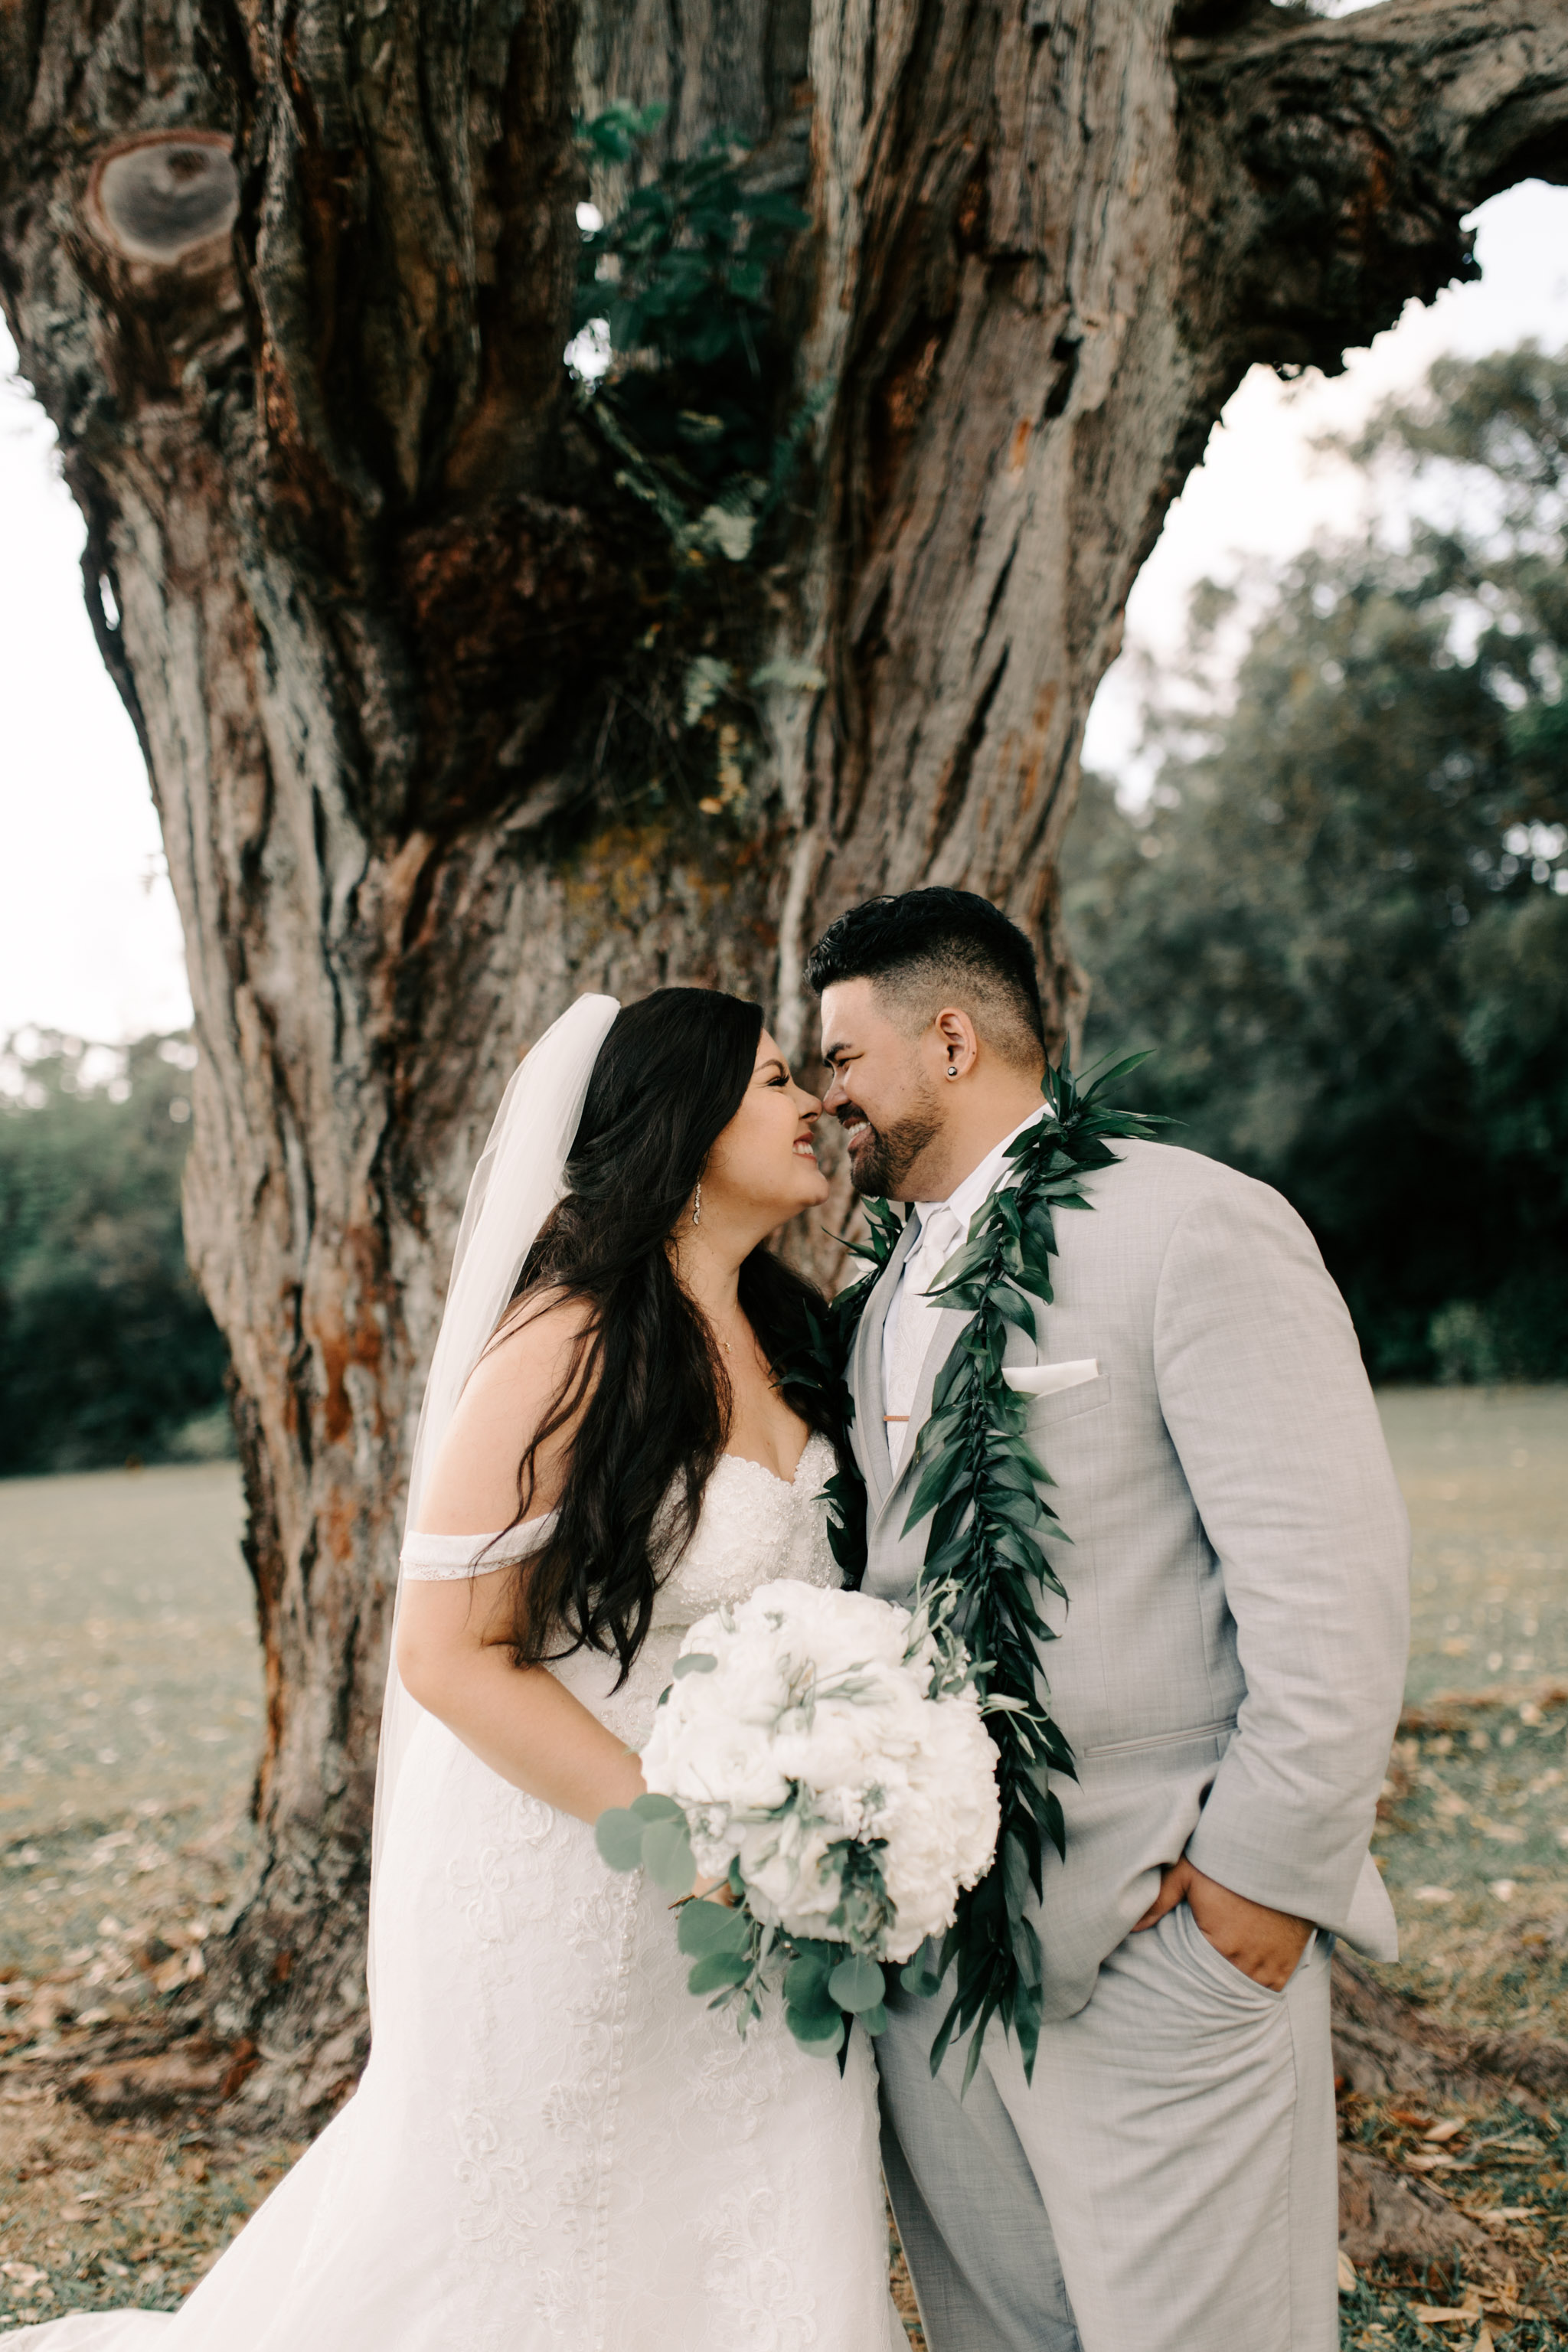 Sunset Ranch Hawaii Wedding By Hawaii Wedding Photographer Desiree Leilani